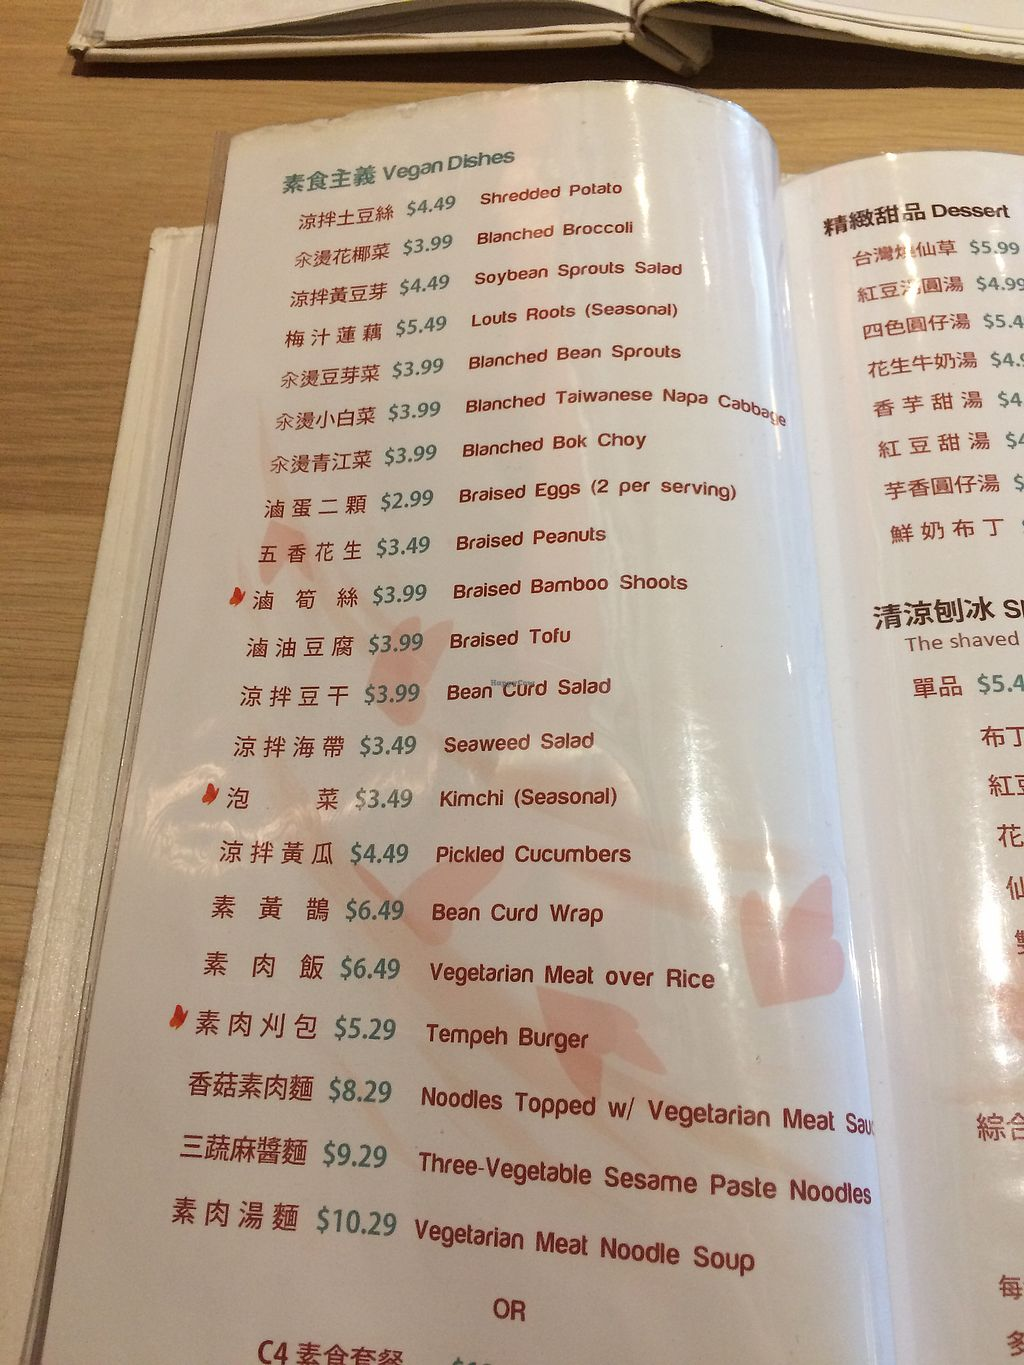 """Photo of MonGa Cafe  by <a href=""""/members/profile/Arti"""">Arti</a> <br/>vegan menu minus one dish that has eggs <br/> April 12, 2018  - <a href='/contact/abuse/image/117411/384330'>Report</a>"""